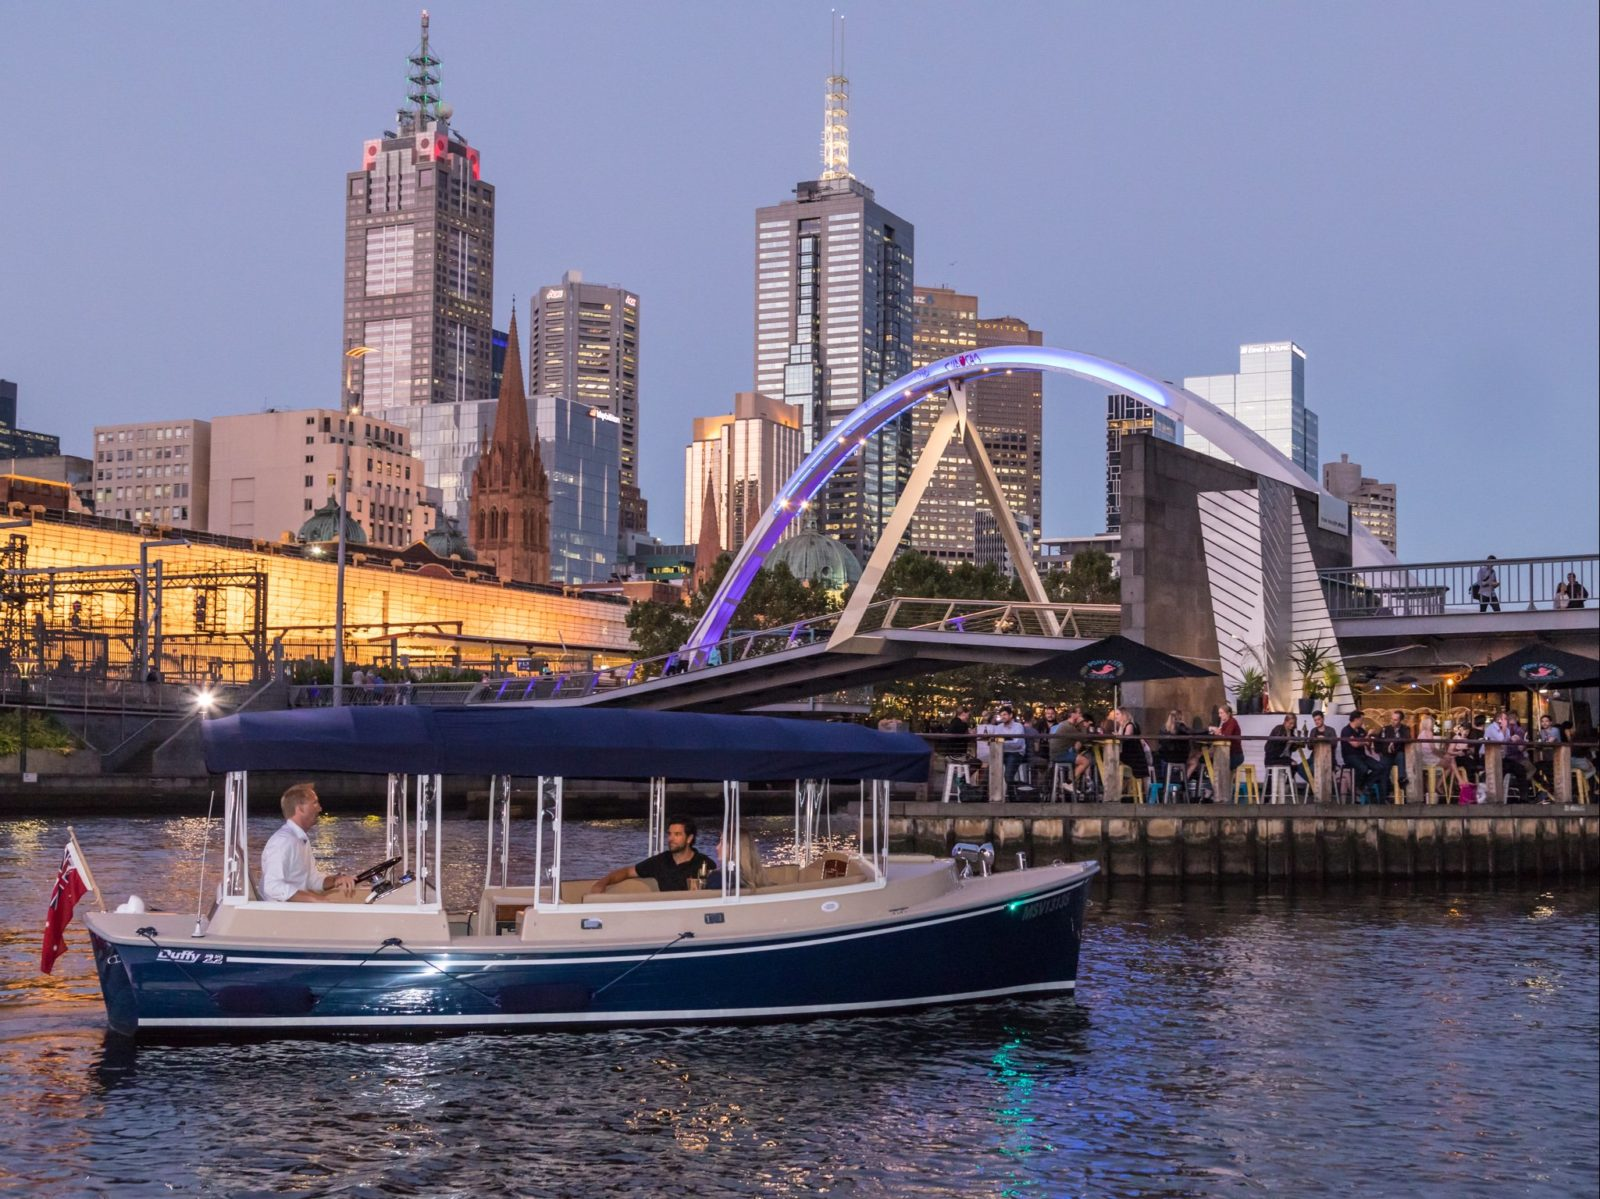 View Melbourne from a new angle on the Yarra River